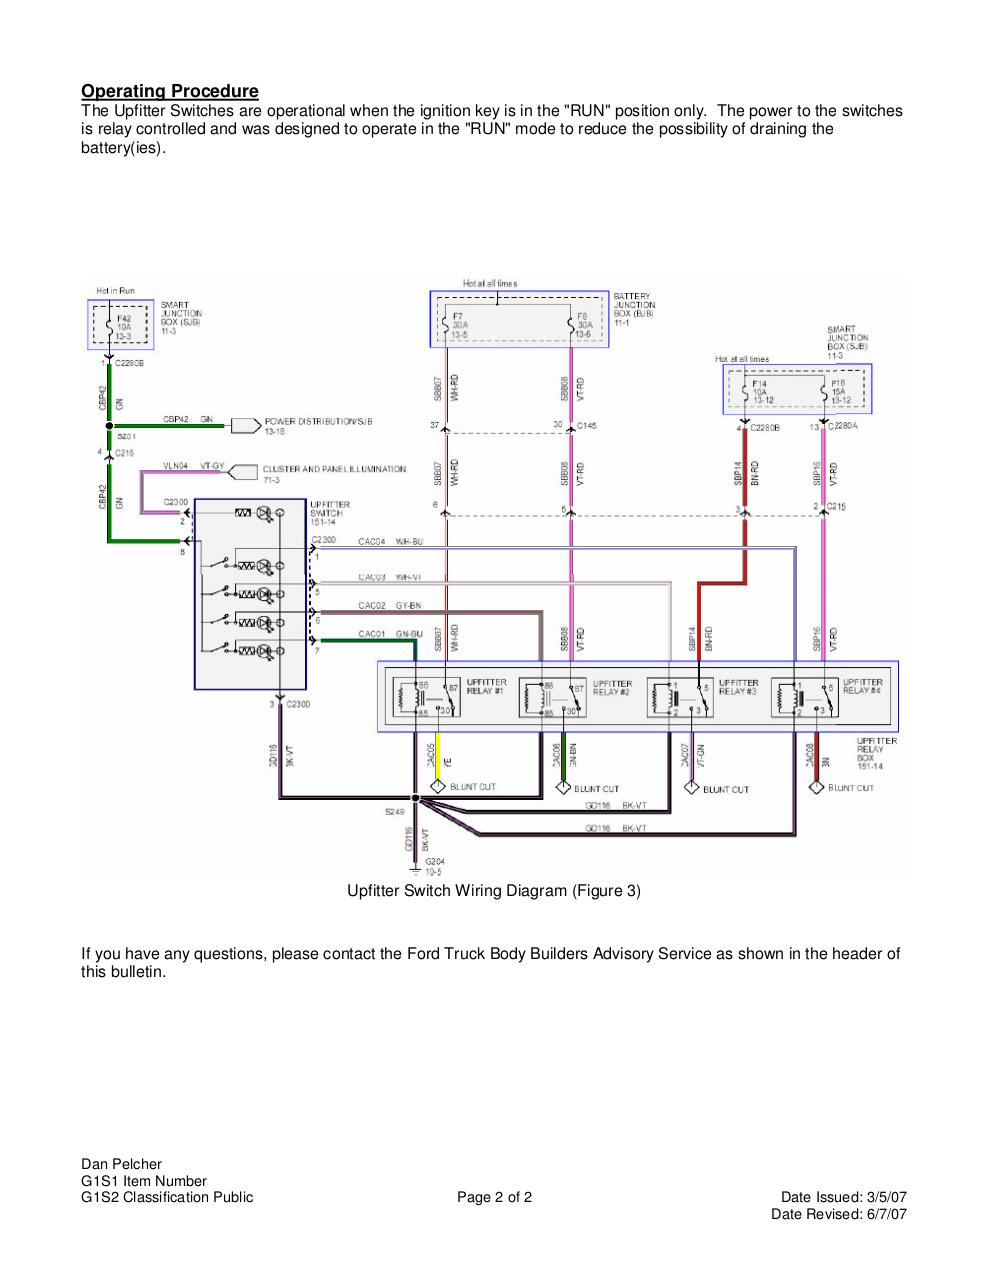 microsoft word q117 r1update doc q117r1 pdf pdf archive the four blunt cut wires are as follows switches aux 1 aux 2 aux 3 aux 4 circuit cac05 cac06 cac07 cac08